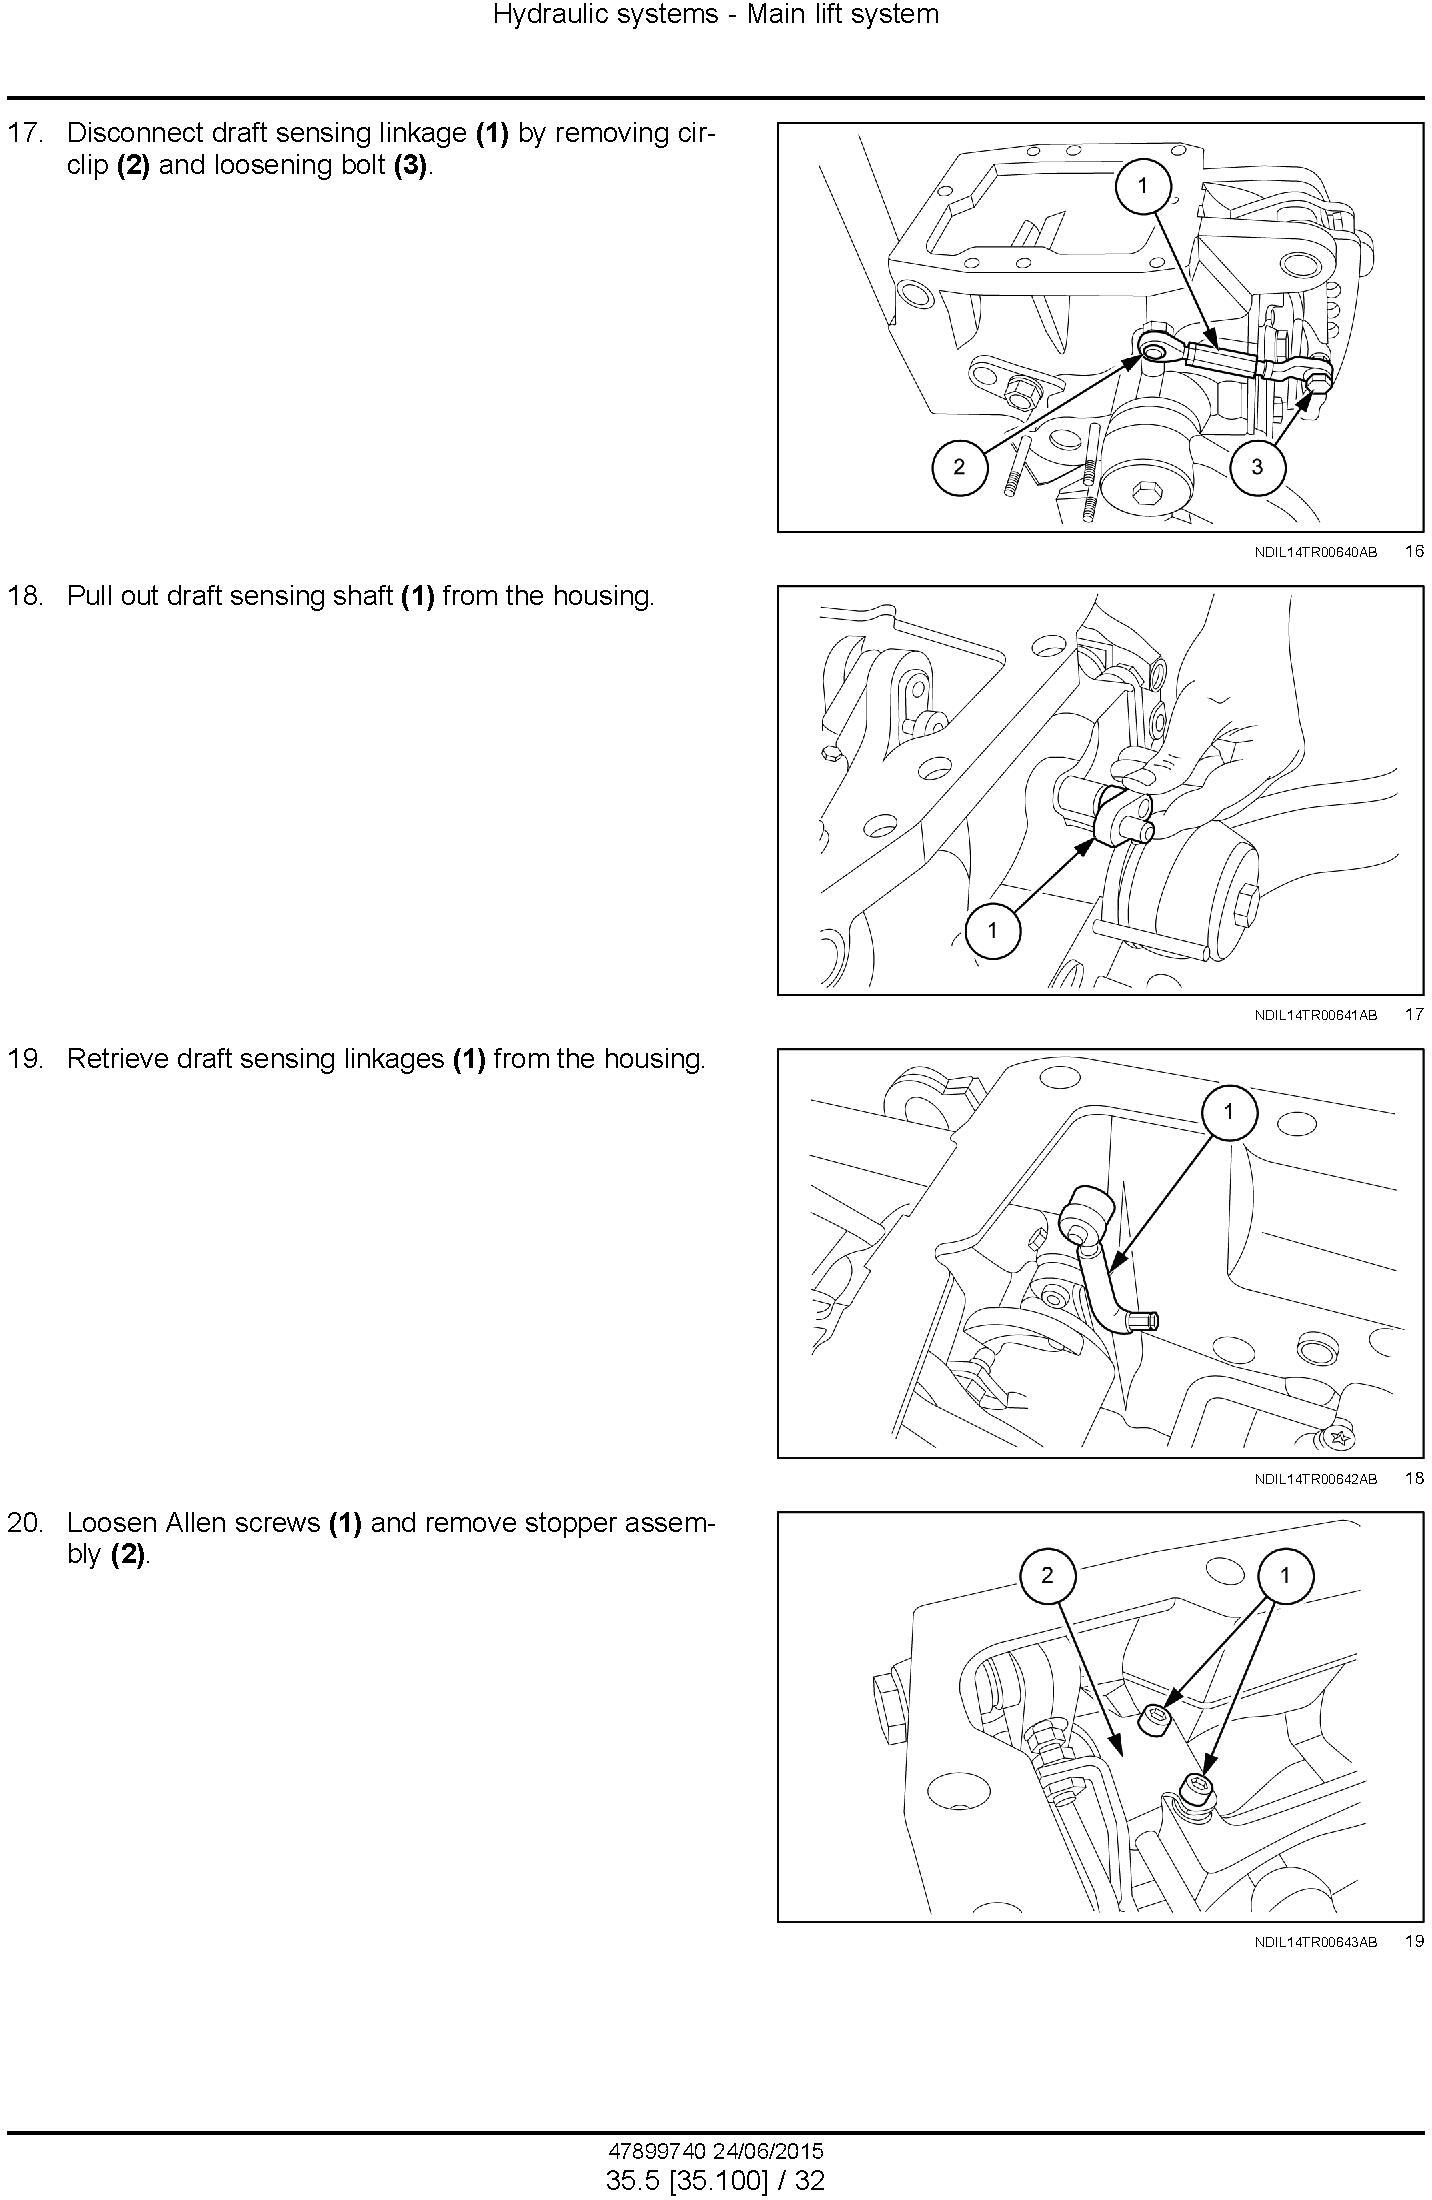 New Holland 5500, 6500, 7500 Tier 3 Tractor Service Manual - 3